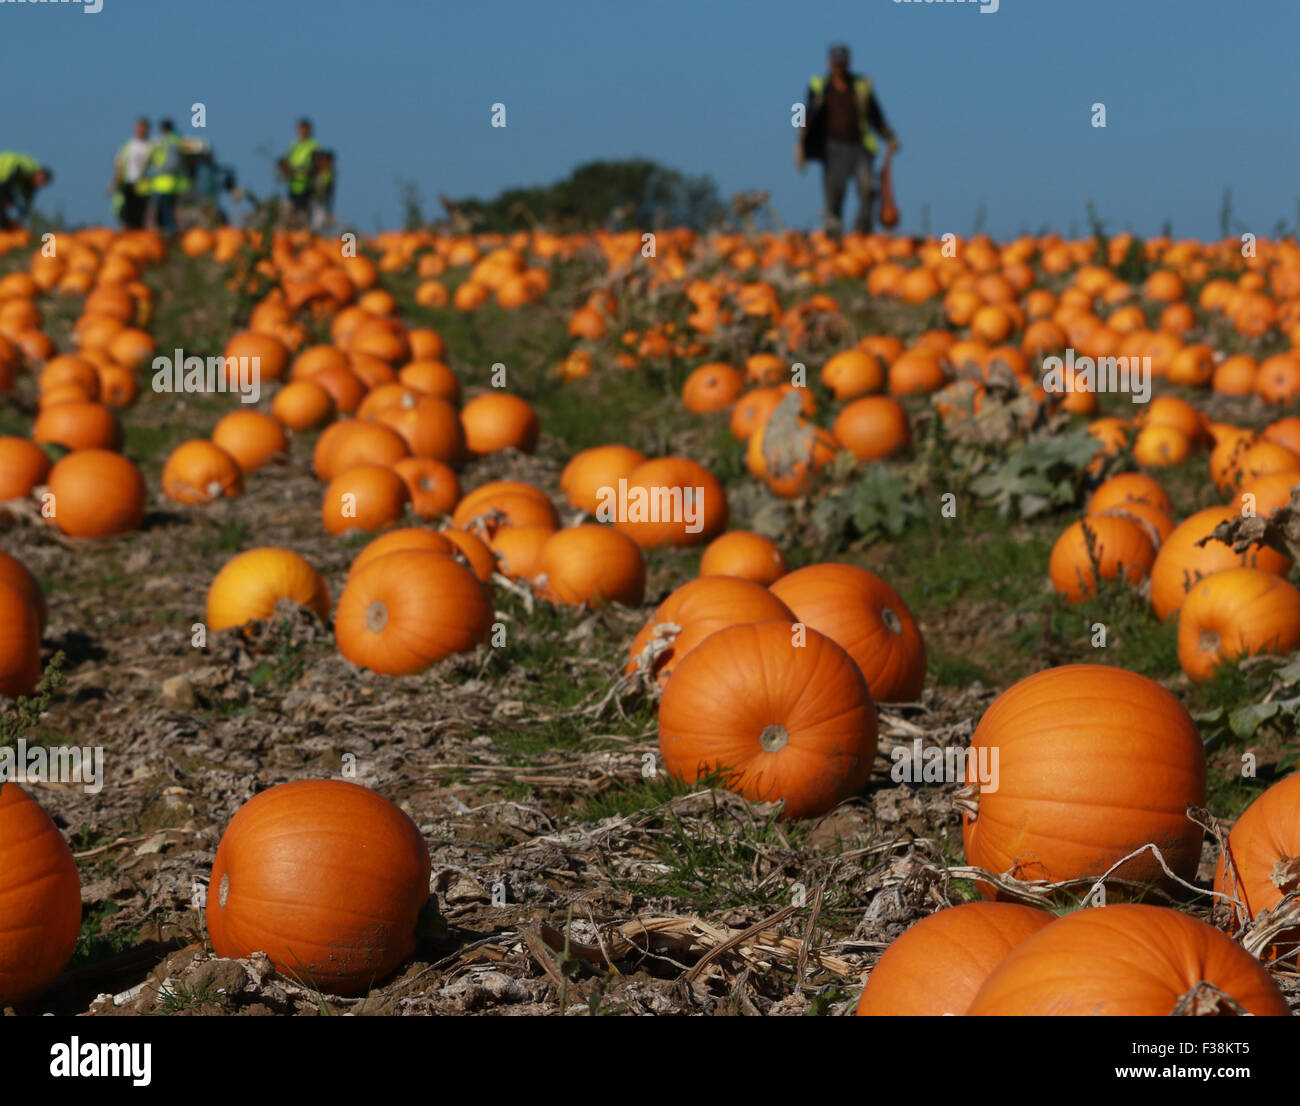 halloween 2015 stock photos & halloween 2015 stock images - alamy